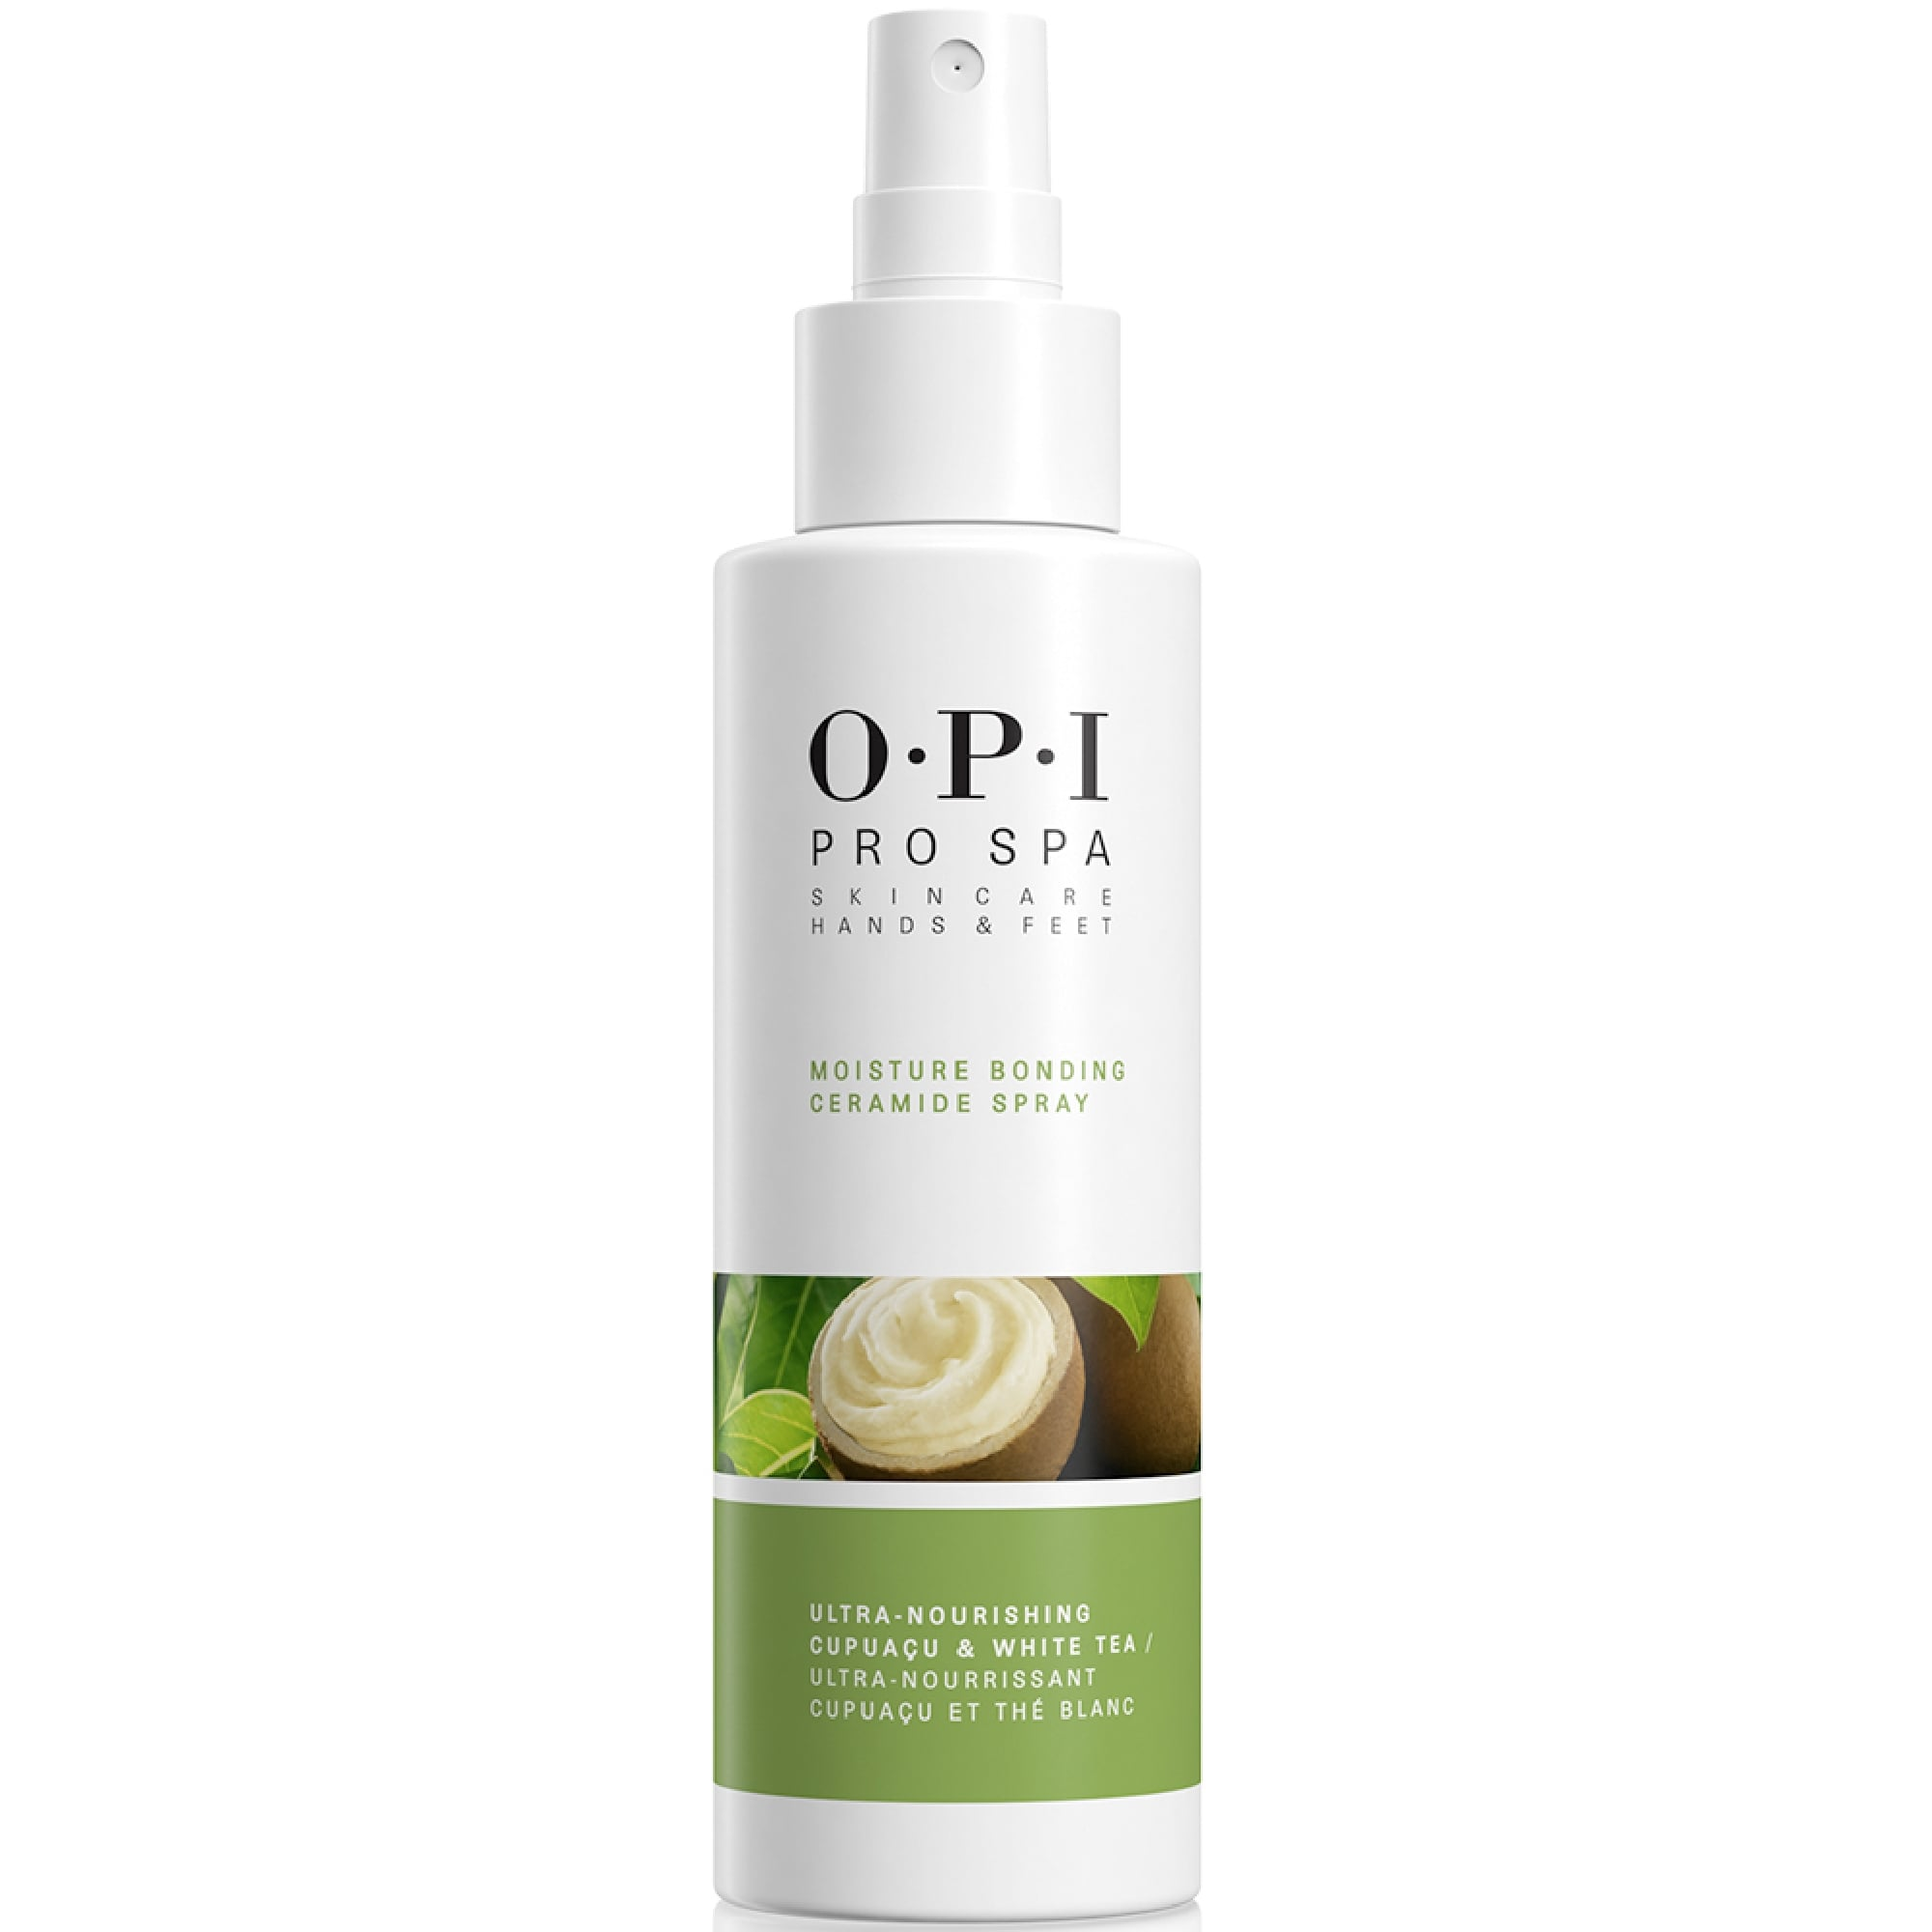 opi pro spa moisture bonding ceramide spray beautyvit huidverbetering breda dreef 10 schoonheidssalon